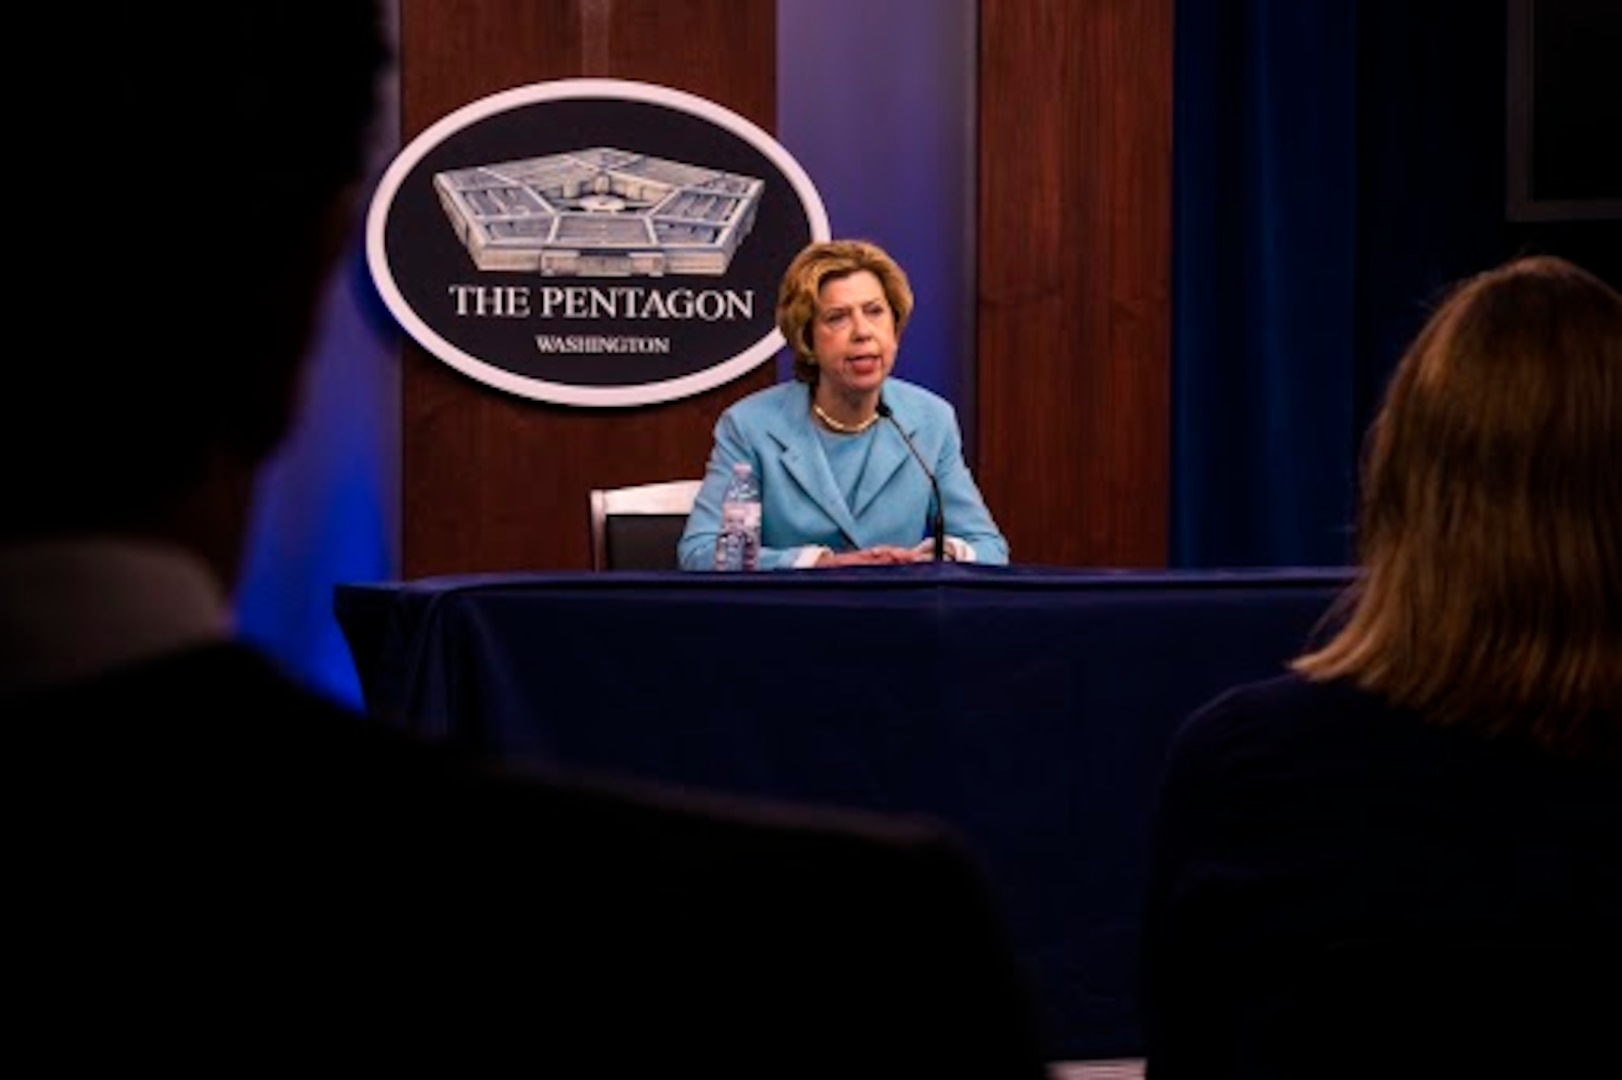 """Woman seated at a table with a microphone speaks. There is a sign in the background stating that it is """"The Pentagon."""""""